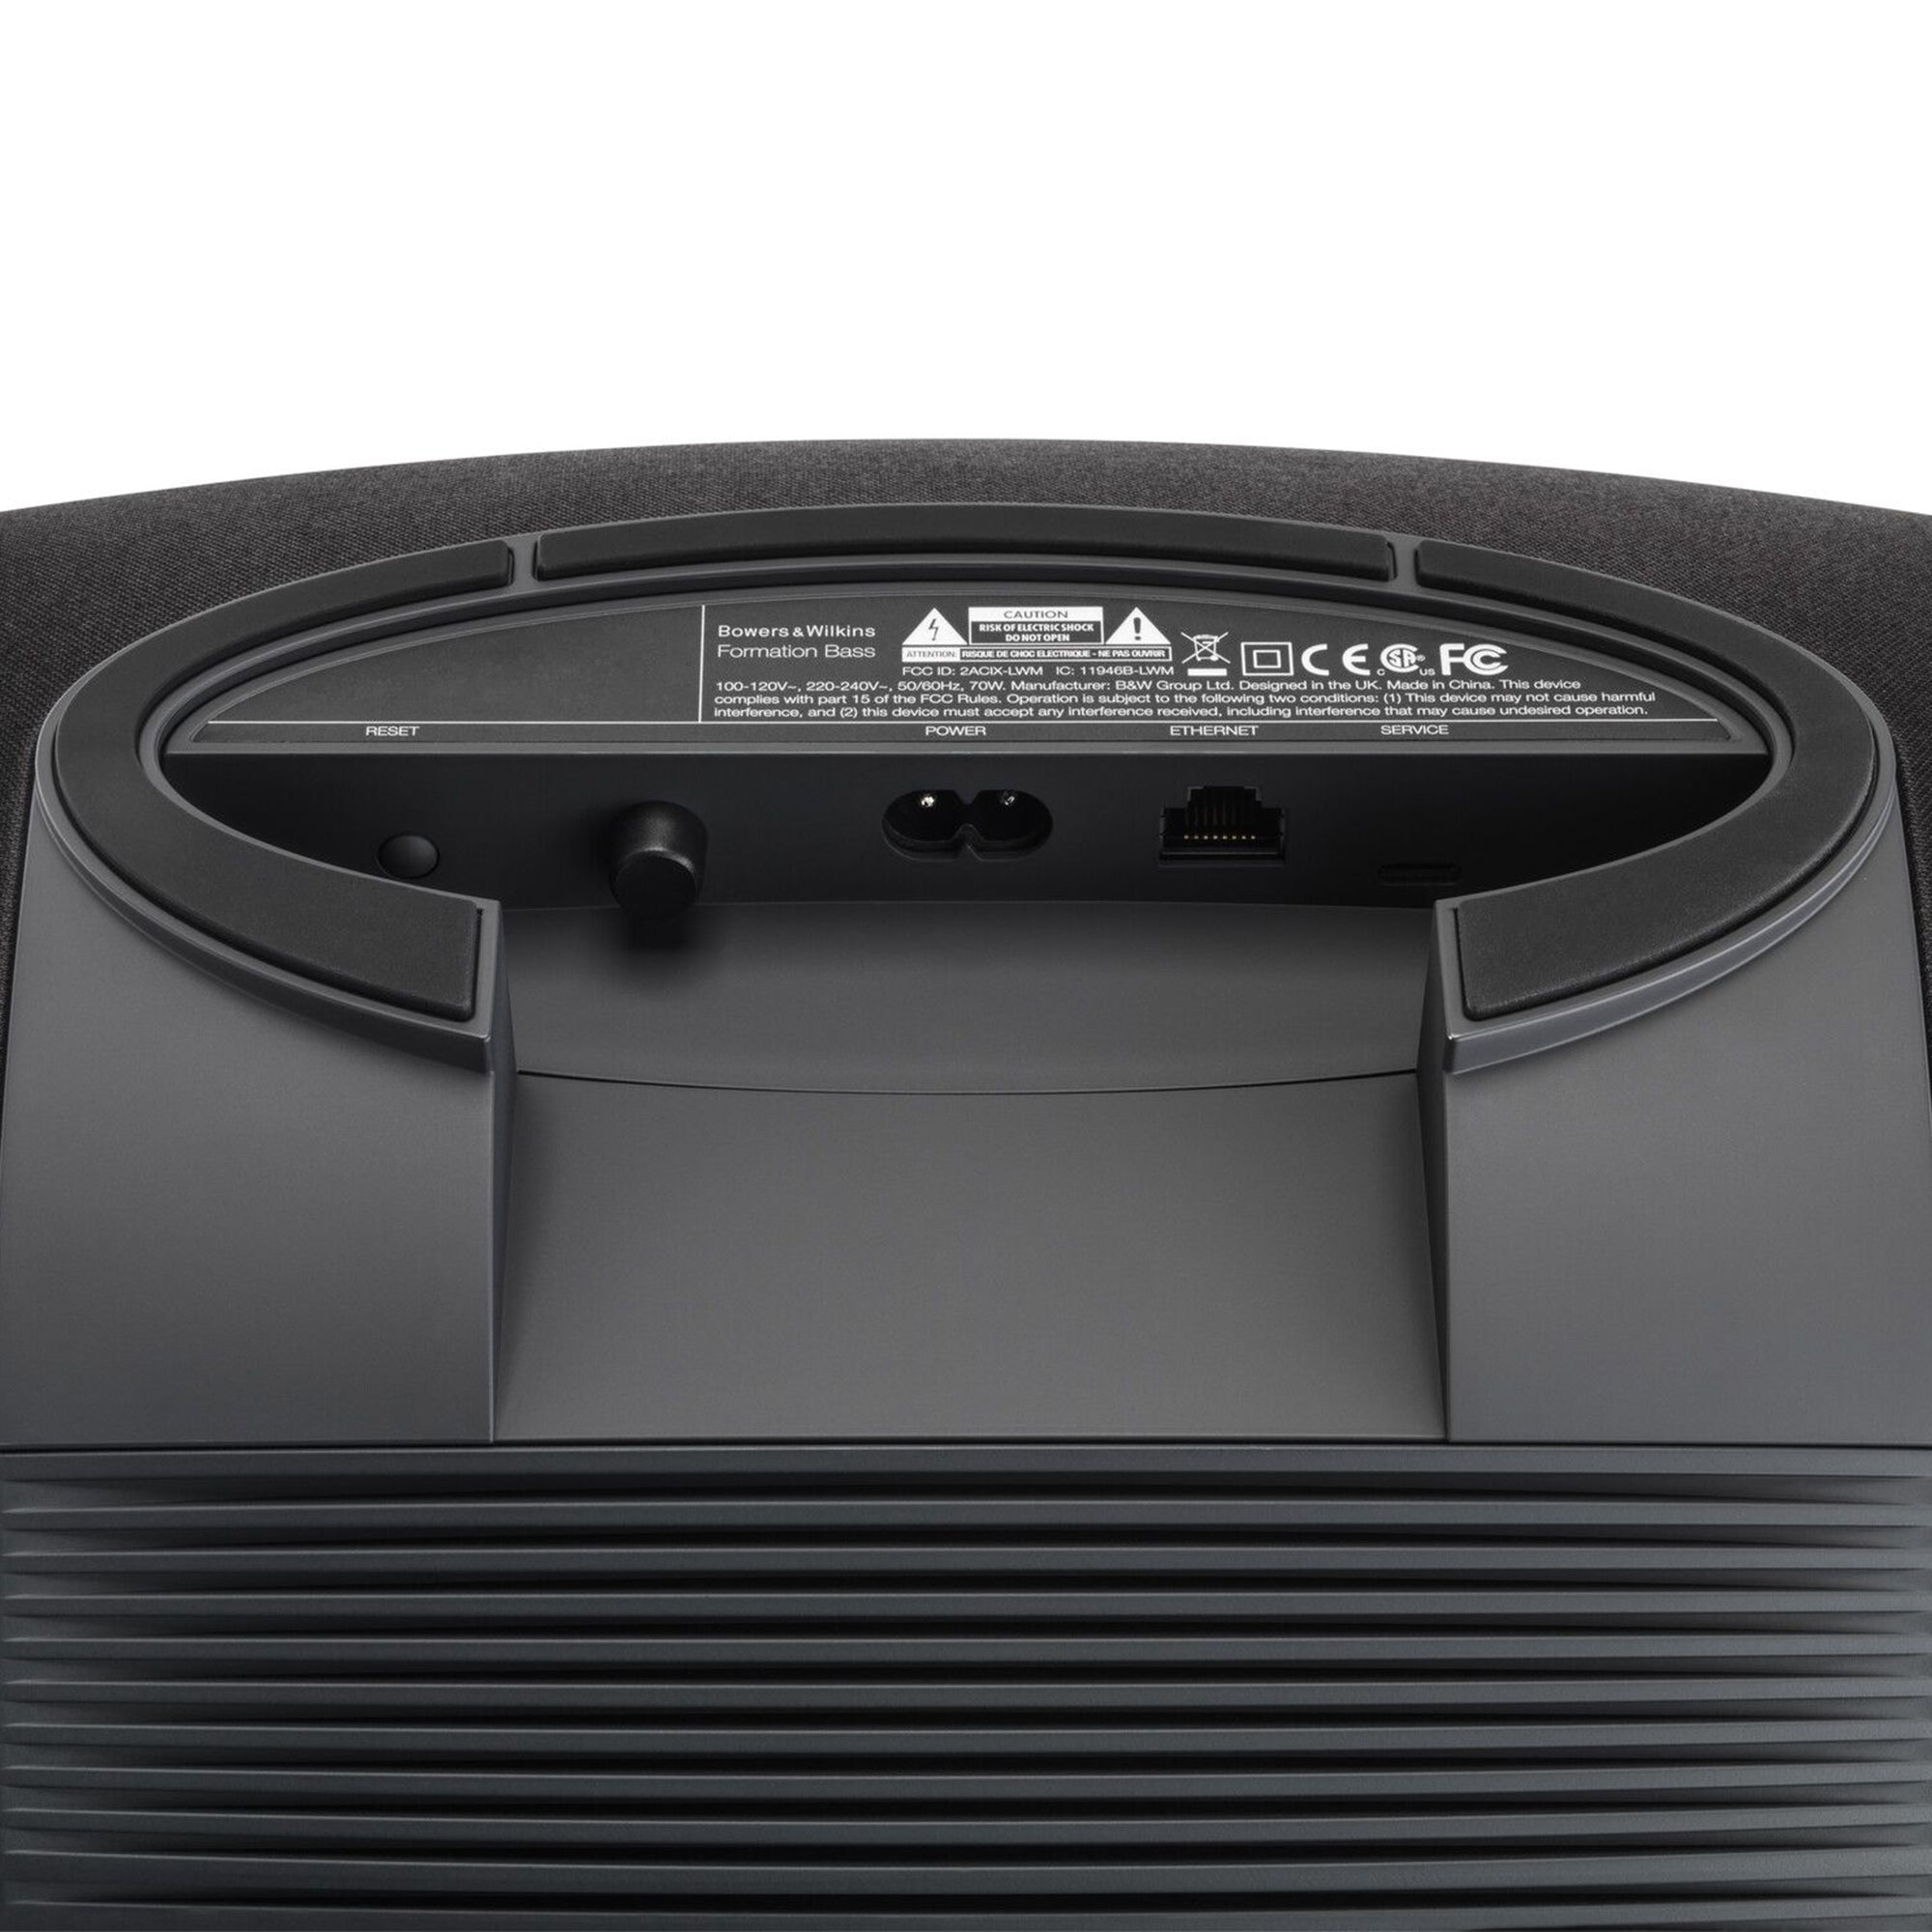 Bowers & Wilkins Formation BASS Wireless Subwoofer